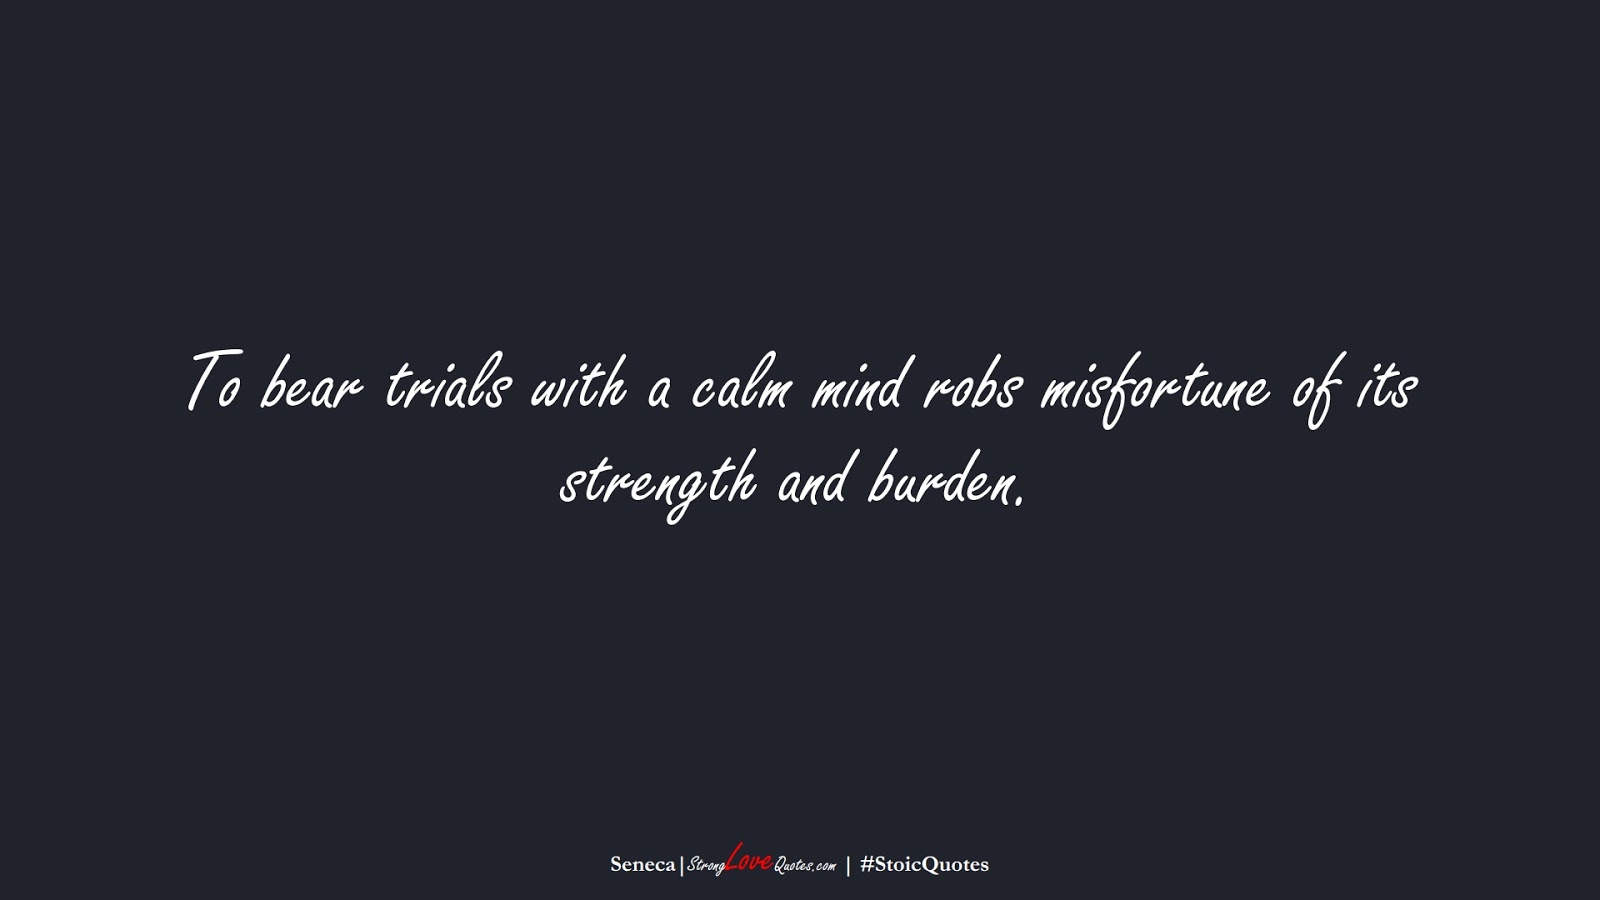 To bear trials with a calm mind robs misfortune of its strength and burden. (Seneca);  #StoicQuotes